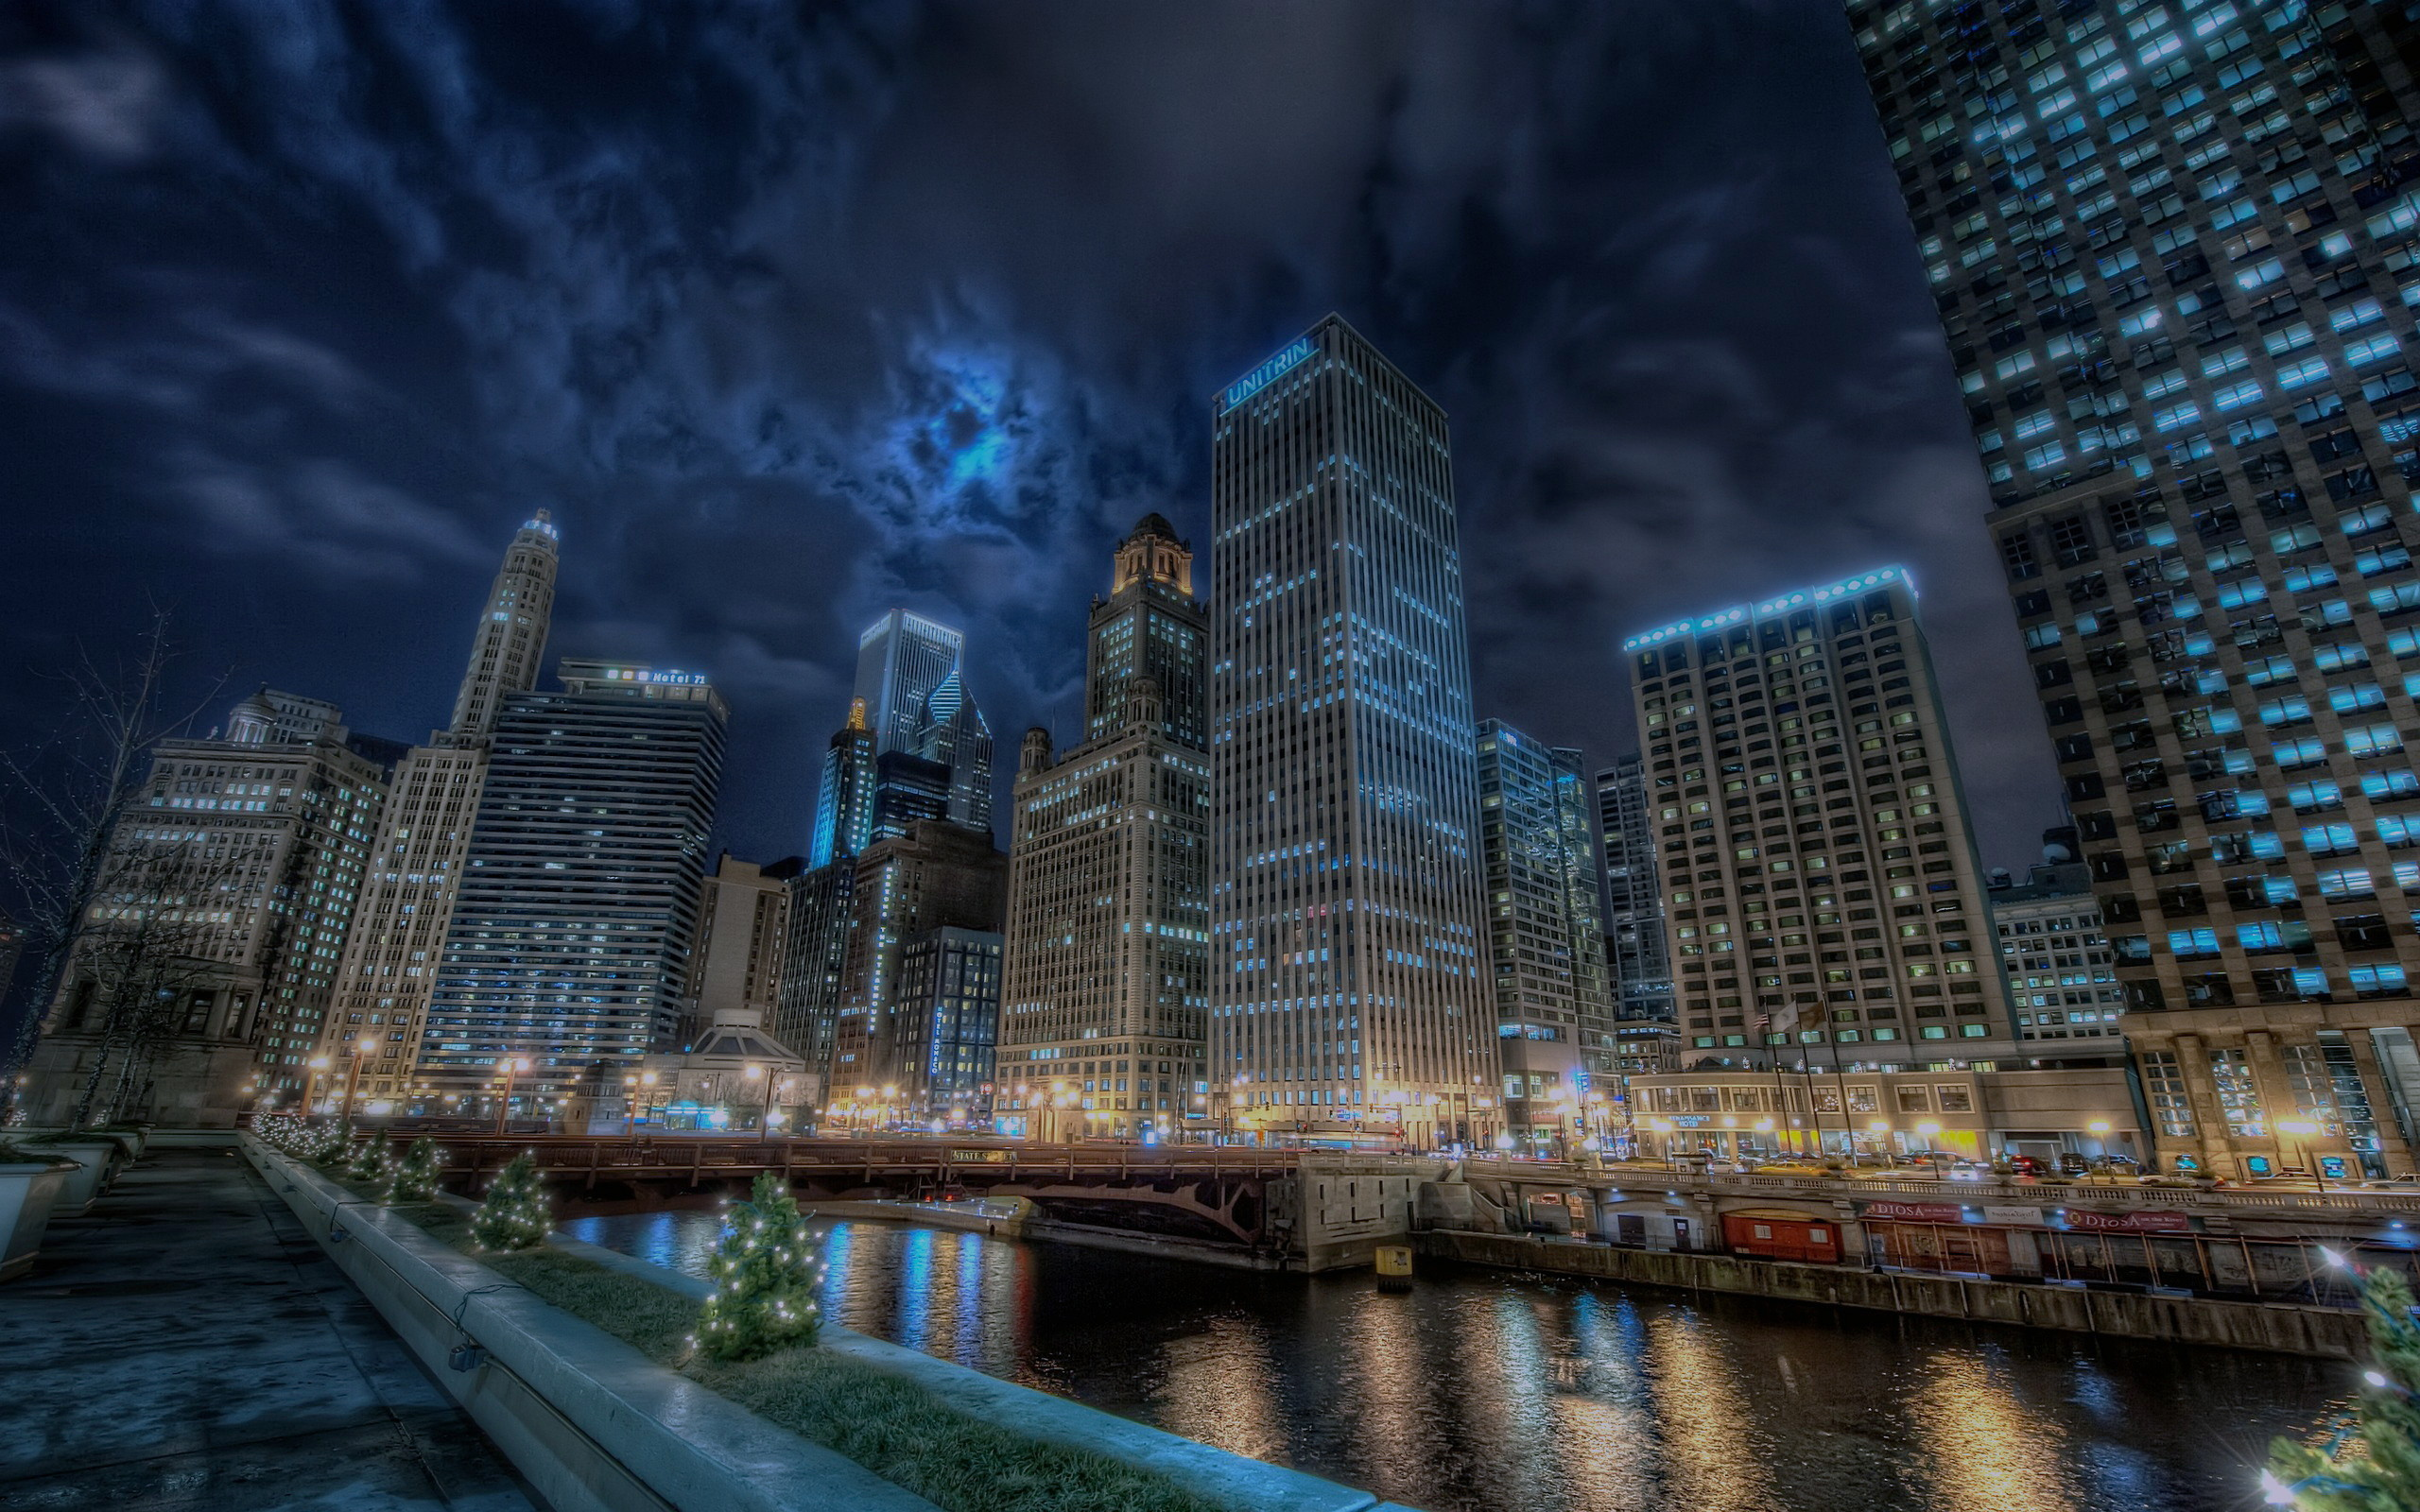 Chicago Wallpapers Wallpaper | HD Wallpapers | Pinterest | Chicago wallpaper  and Wallpaper